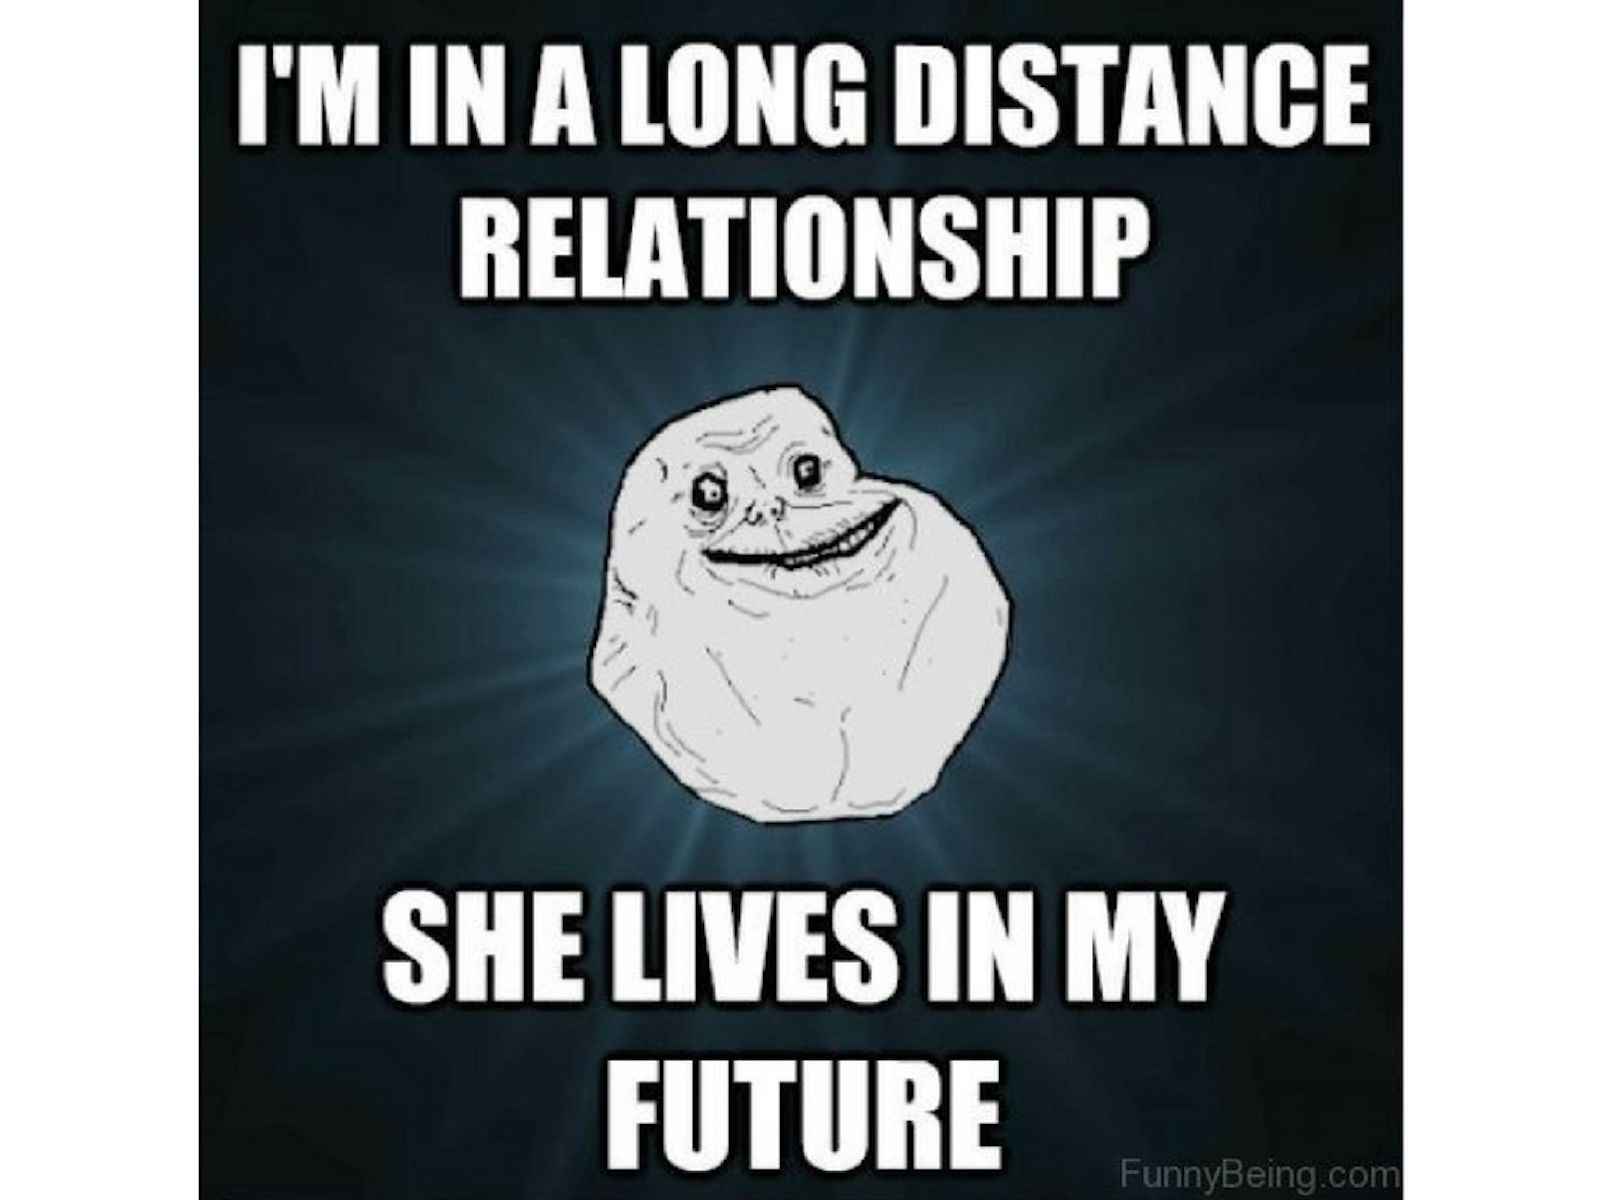 What are you looking for in a relationship meme